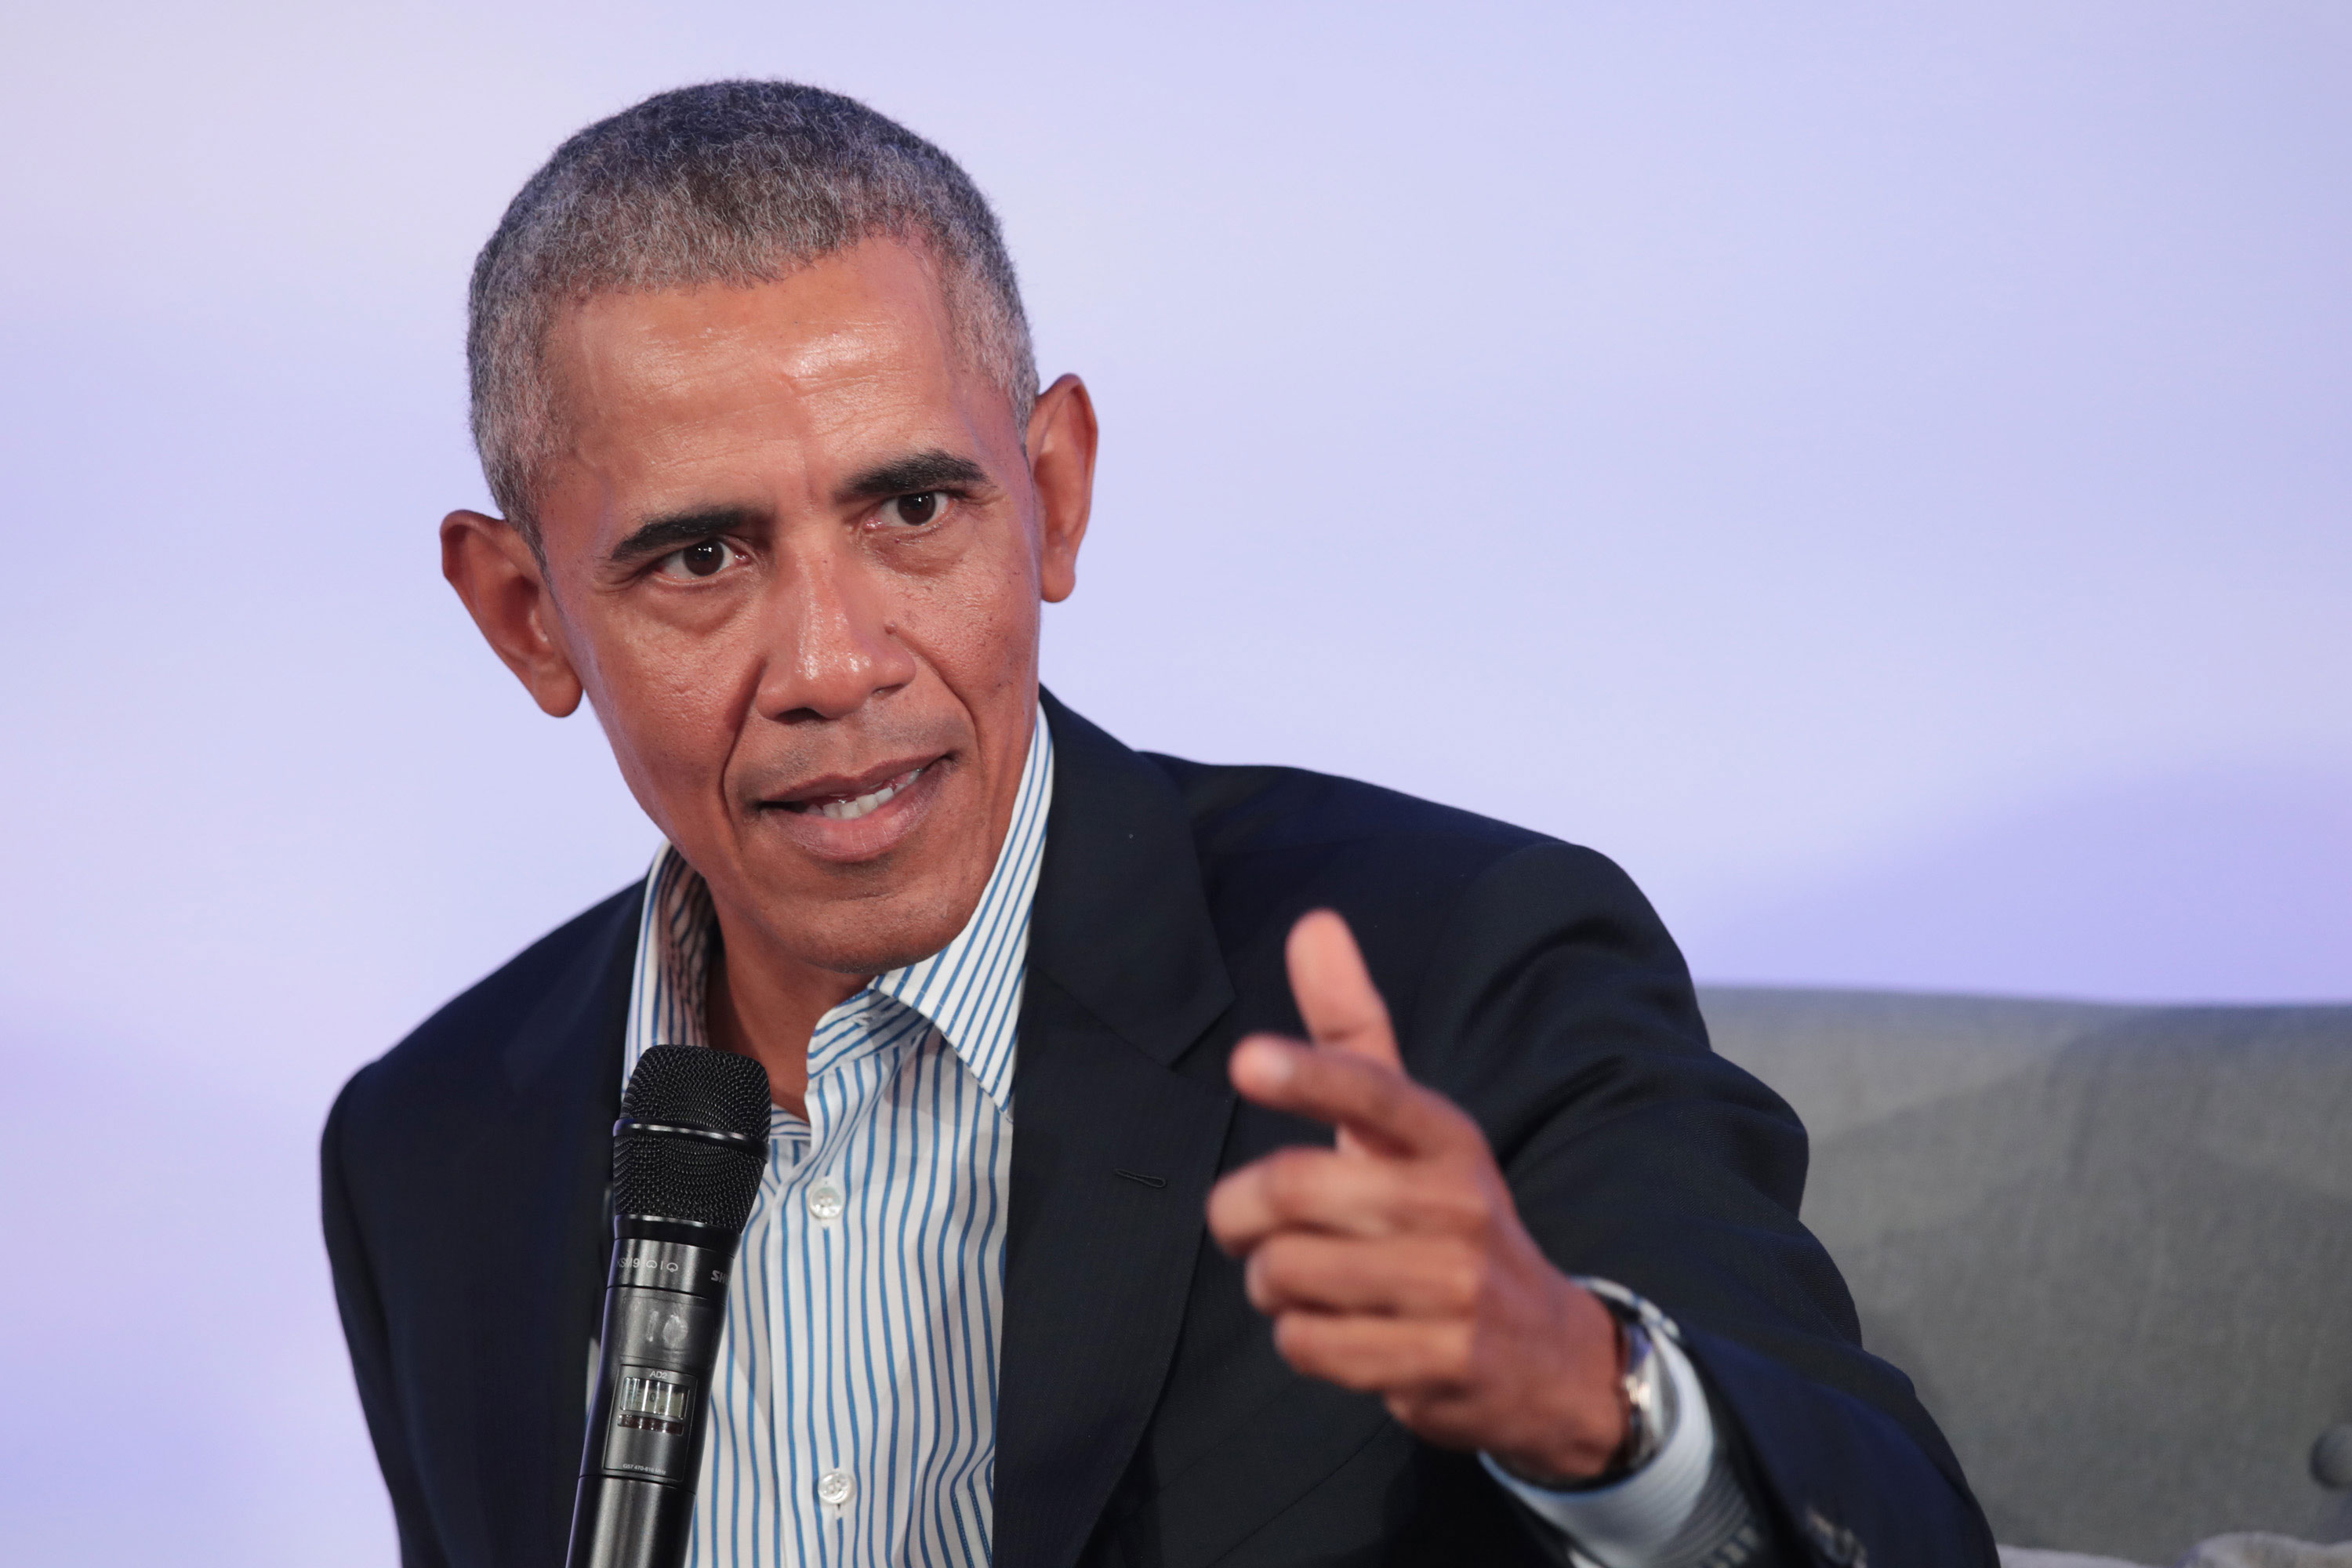 Barack Obama speaks at the Obama Foundation Summit on October 29, 2019 in Chicago, Illinois.